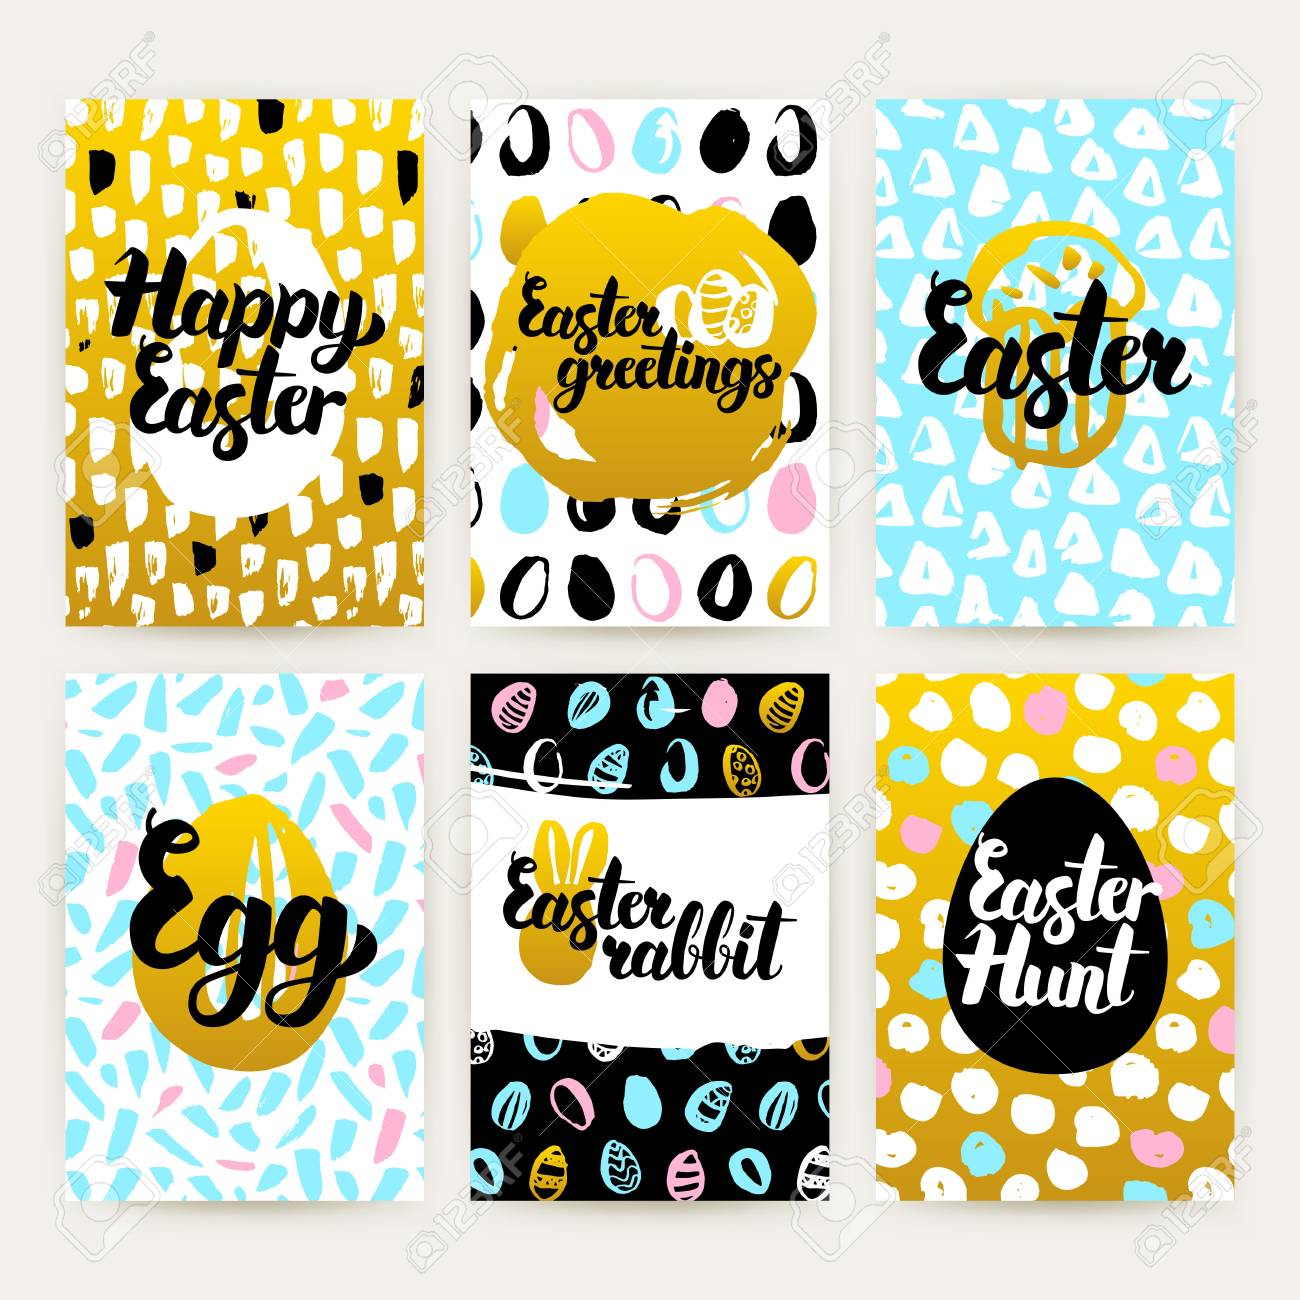 Simple easter greetings trendy brochures royalty free cliparts simple easter greetings trendy brochures stock vector 74408657 m4hsunfo